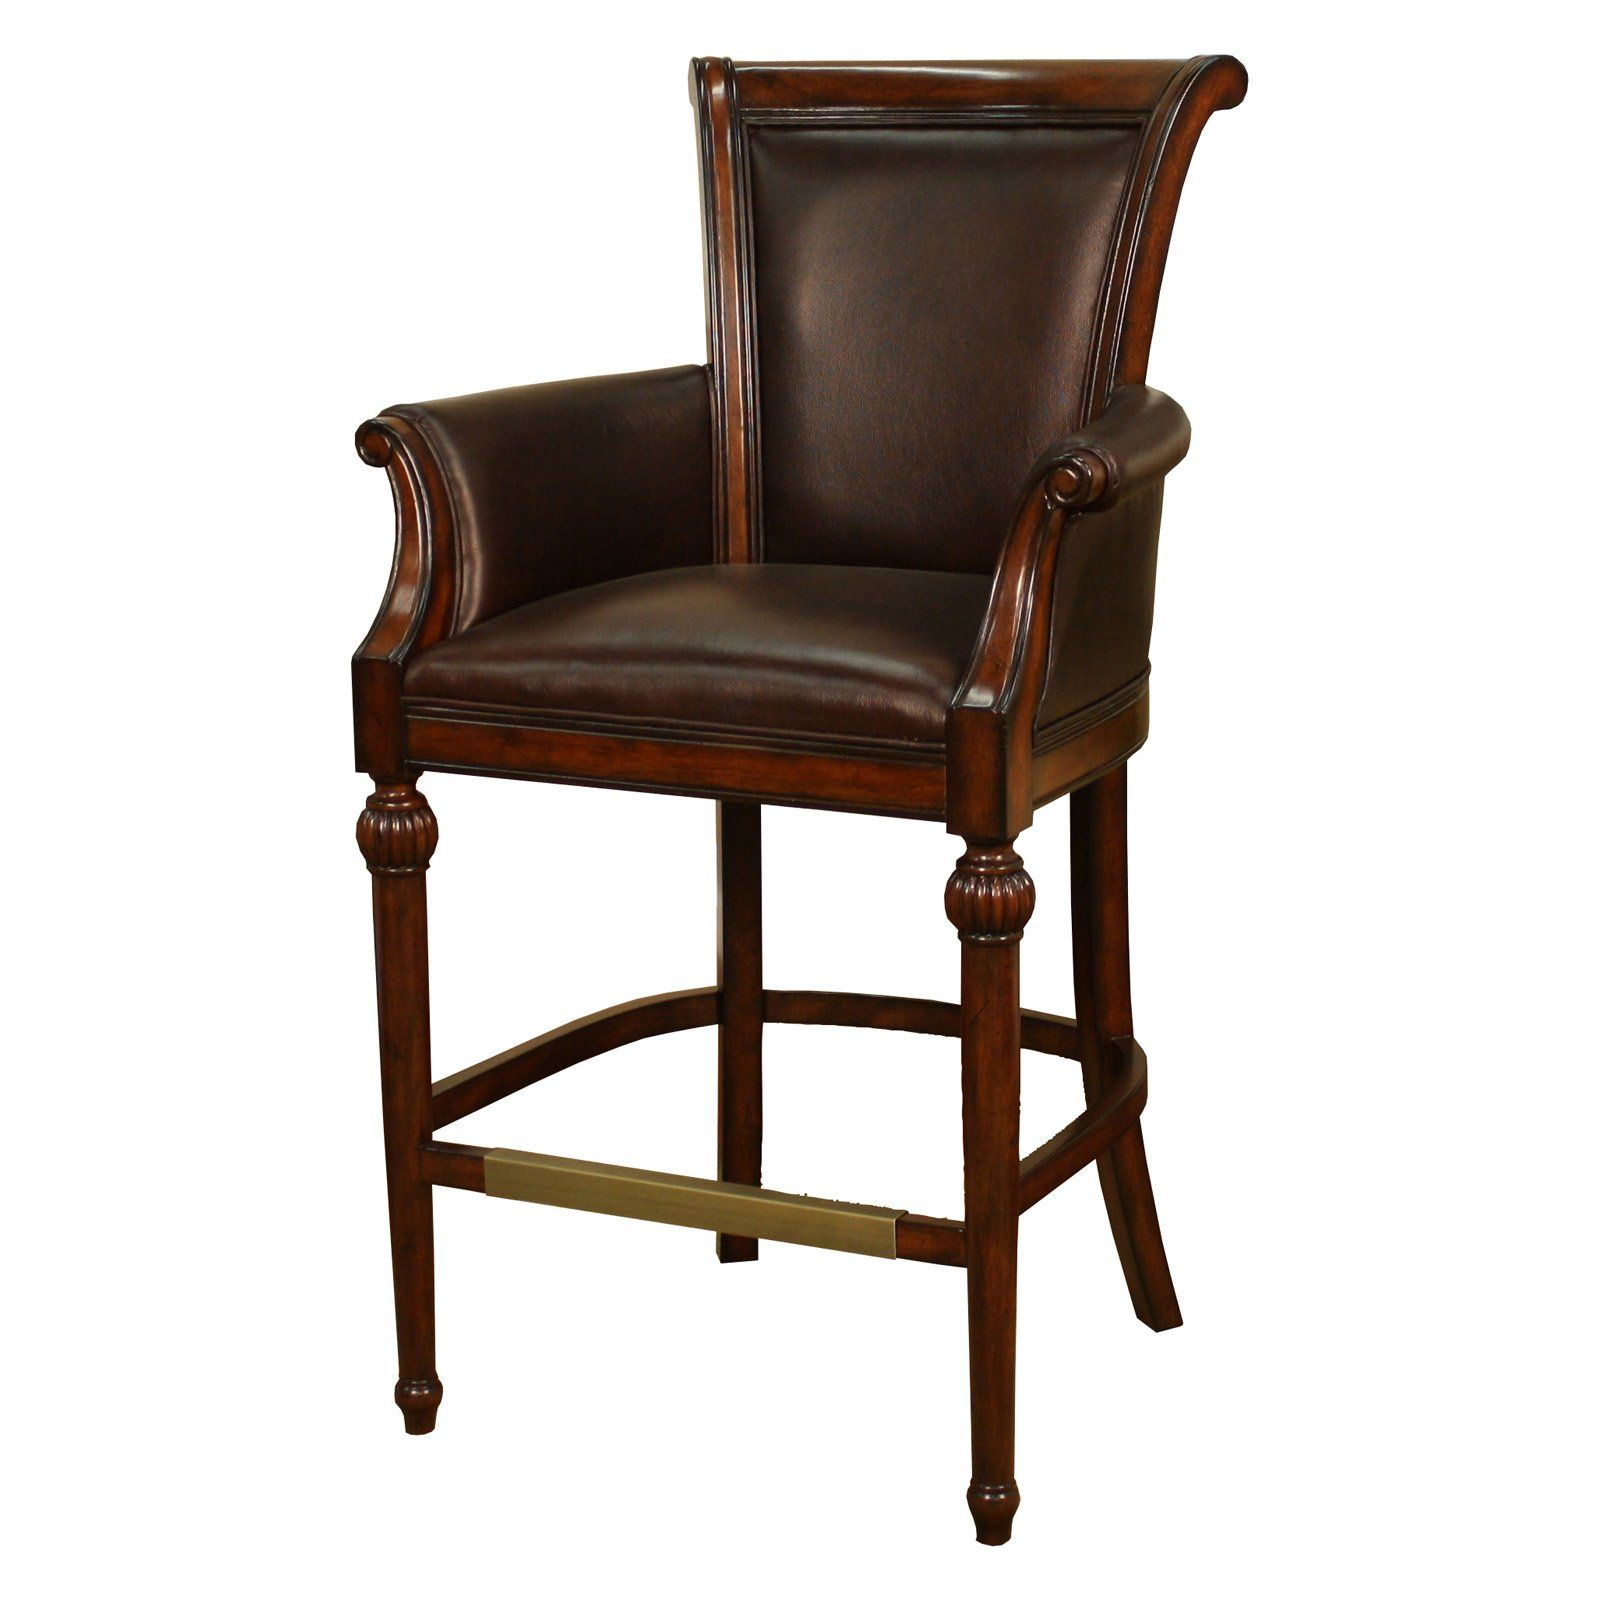 AHB Federico Bar Stool   The Federico Bar Stool Offers A Distinctively  Traditional Design That Showcases